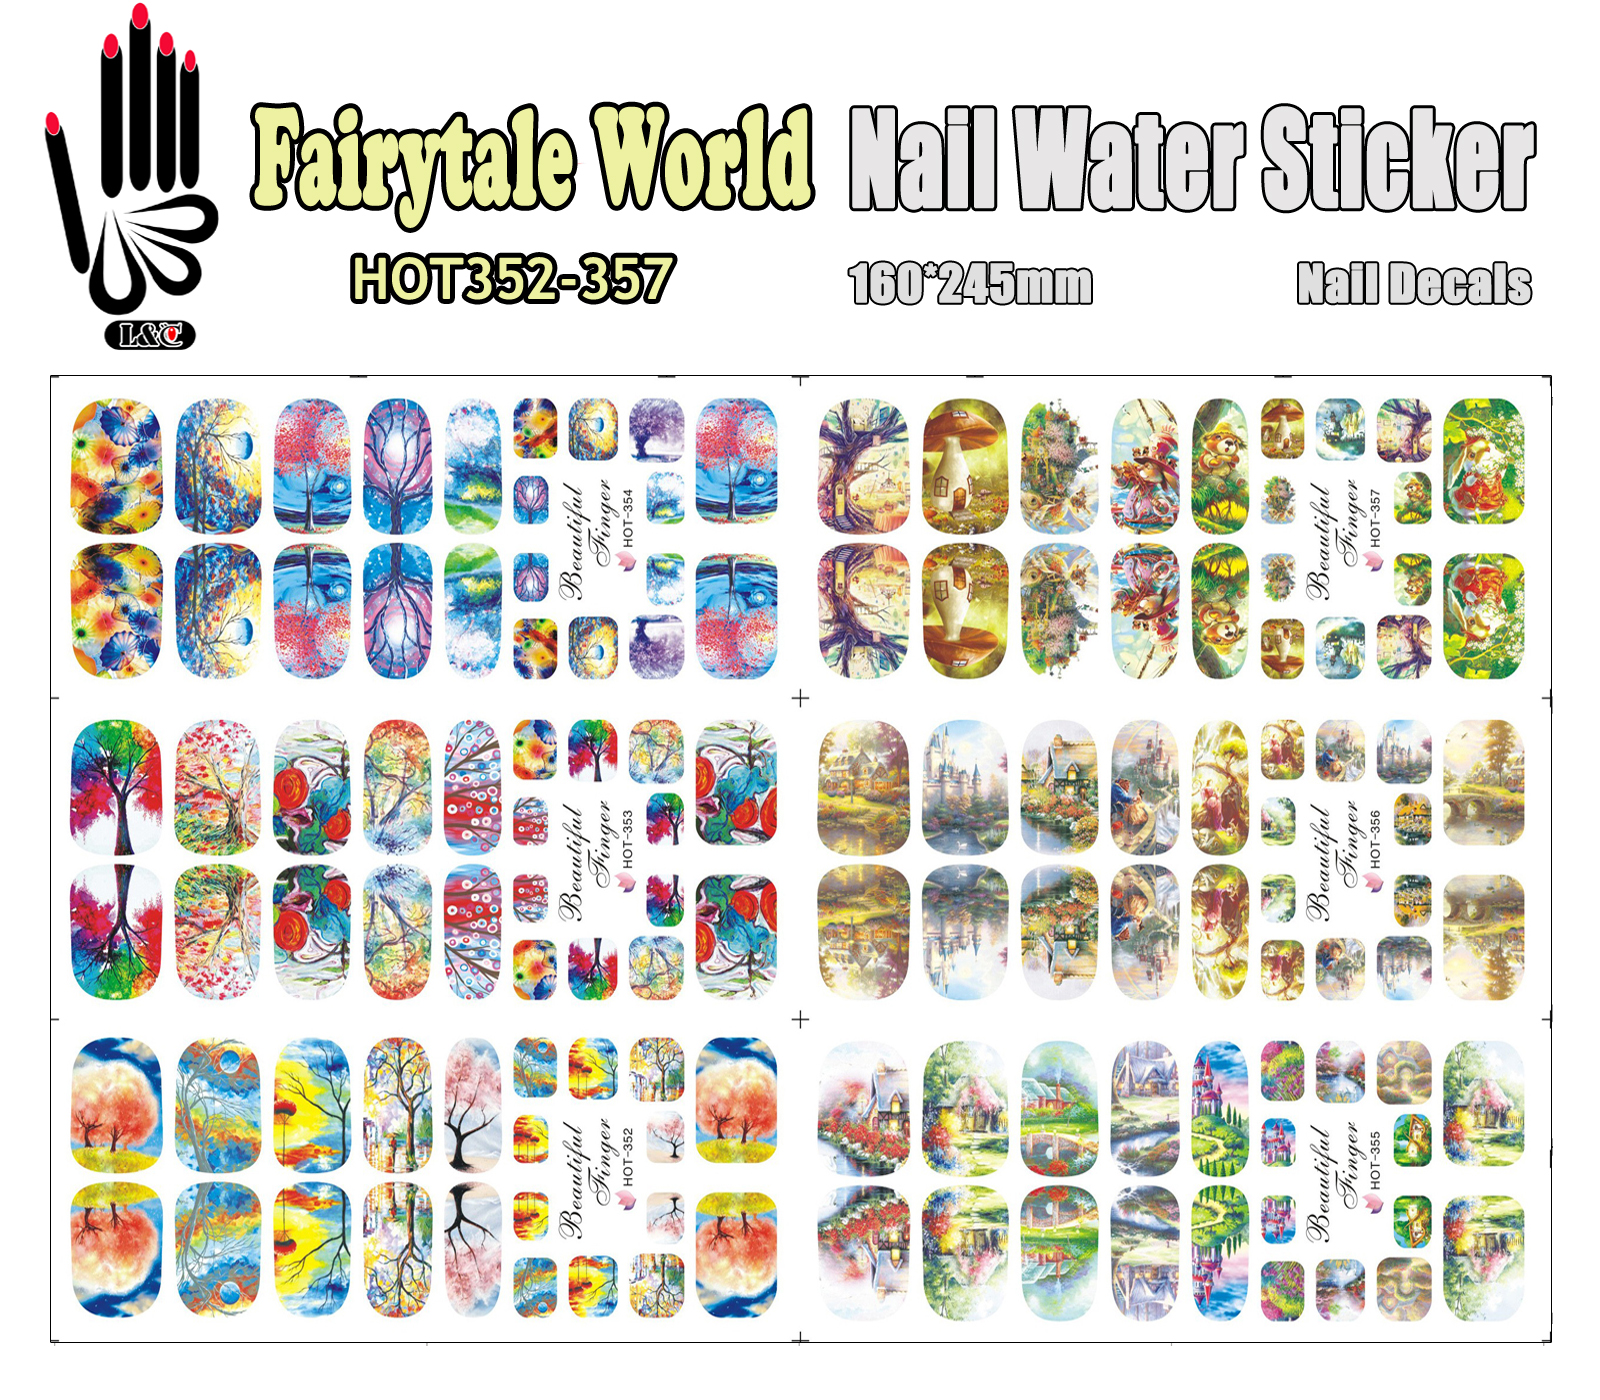 6 Sheets/Lot Art Nail HOT352-357 Fairytale World Full Cover Nail Film Nail Art Water Sticker Decal For Nail Art (6 DESIGNS IN 1)<br><br>Aliexpress